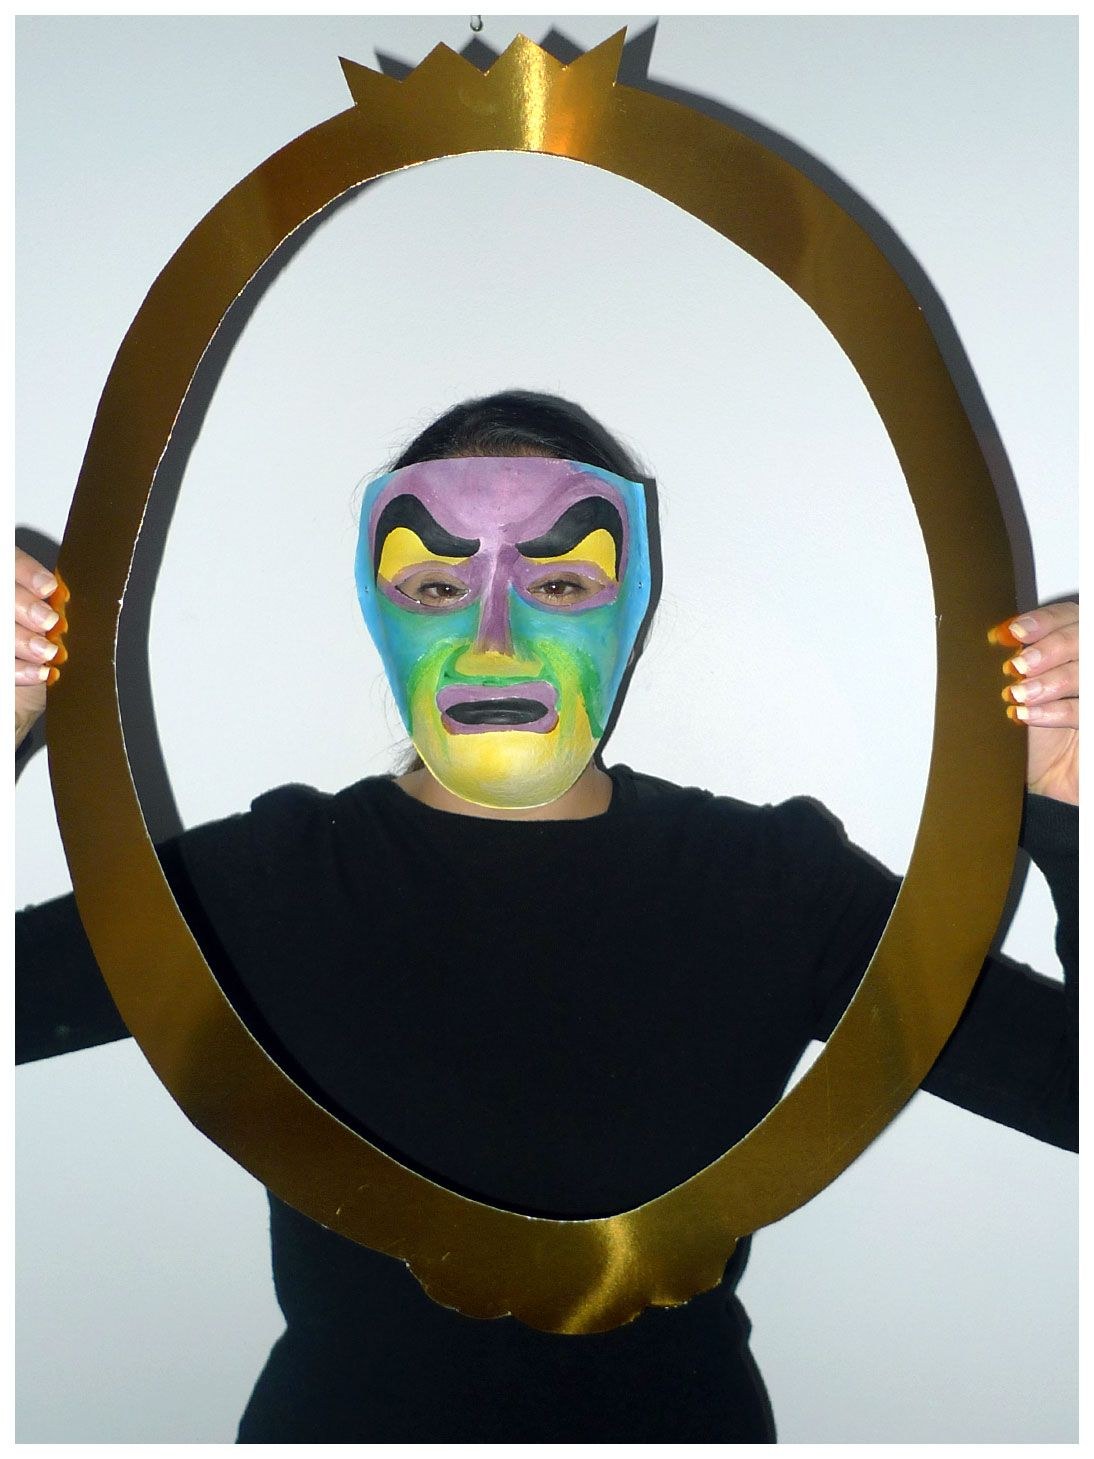 Snow white magic mirror costume midg cursos ordo amoris today is another easy one for your halloween needs with this magic mirror from snow white costume all you need to do is paint a plain mask you get from hot amipublicfo Choice Image